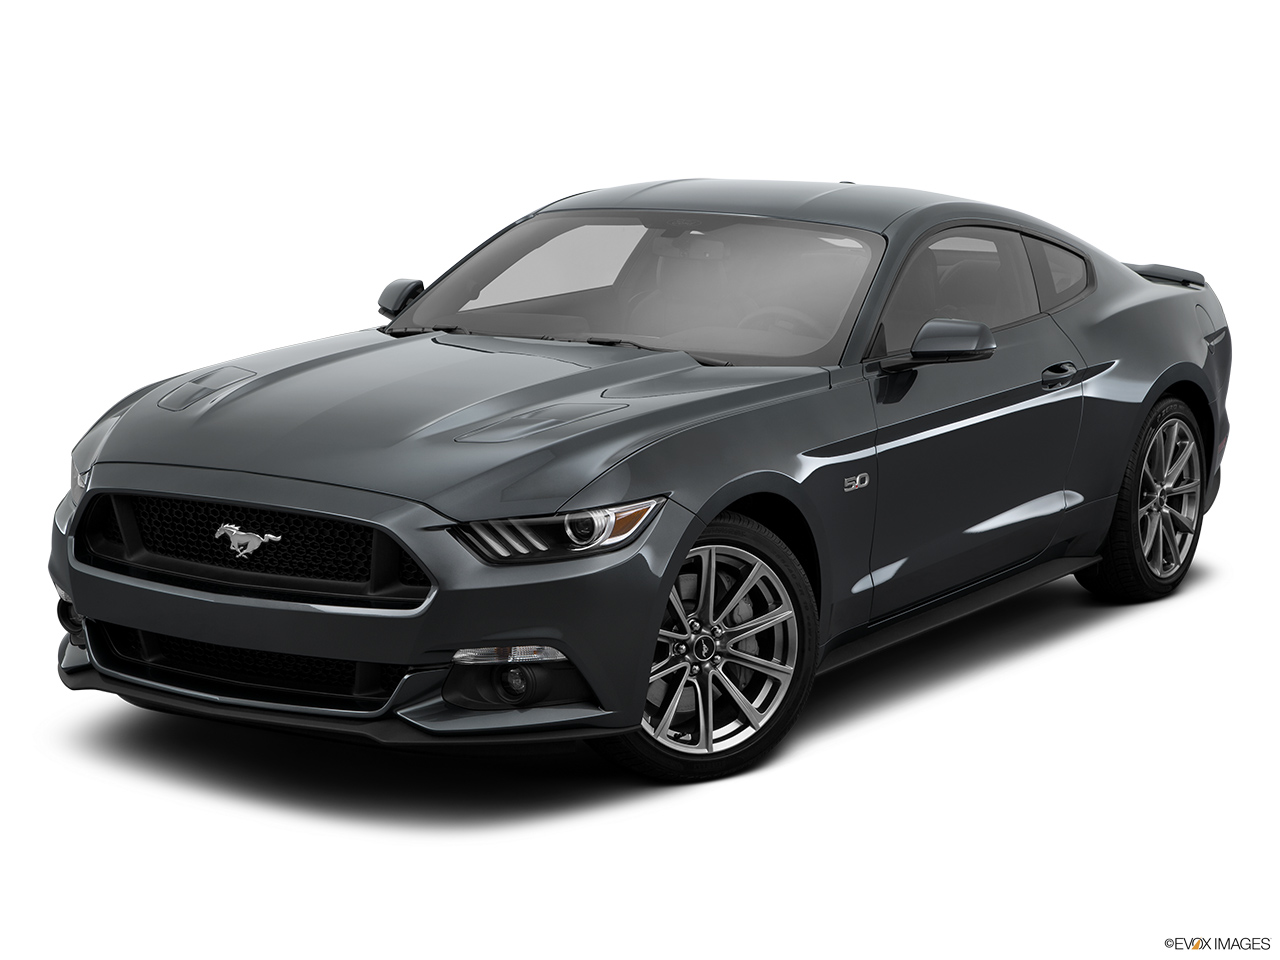 2015 ford mustang 2dr convertible gt premium front angle medium view